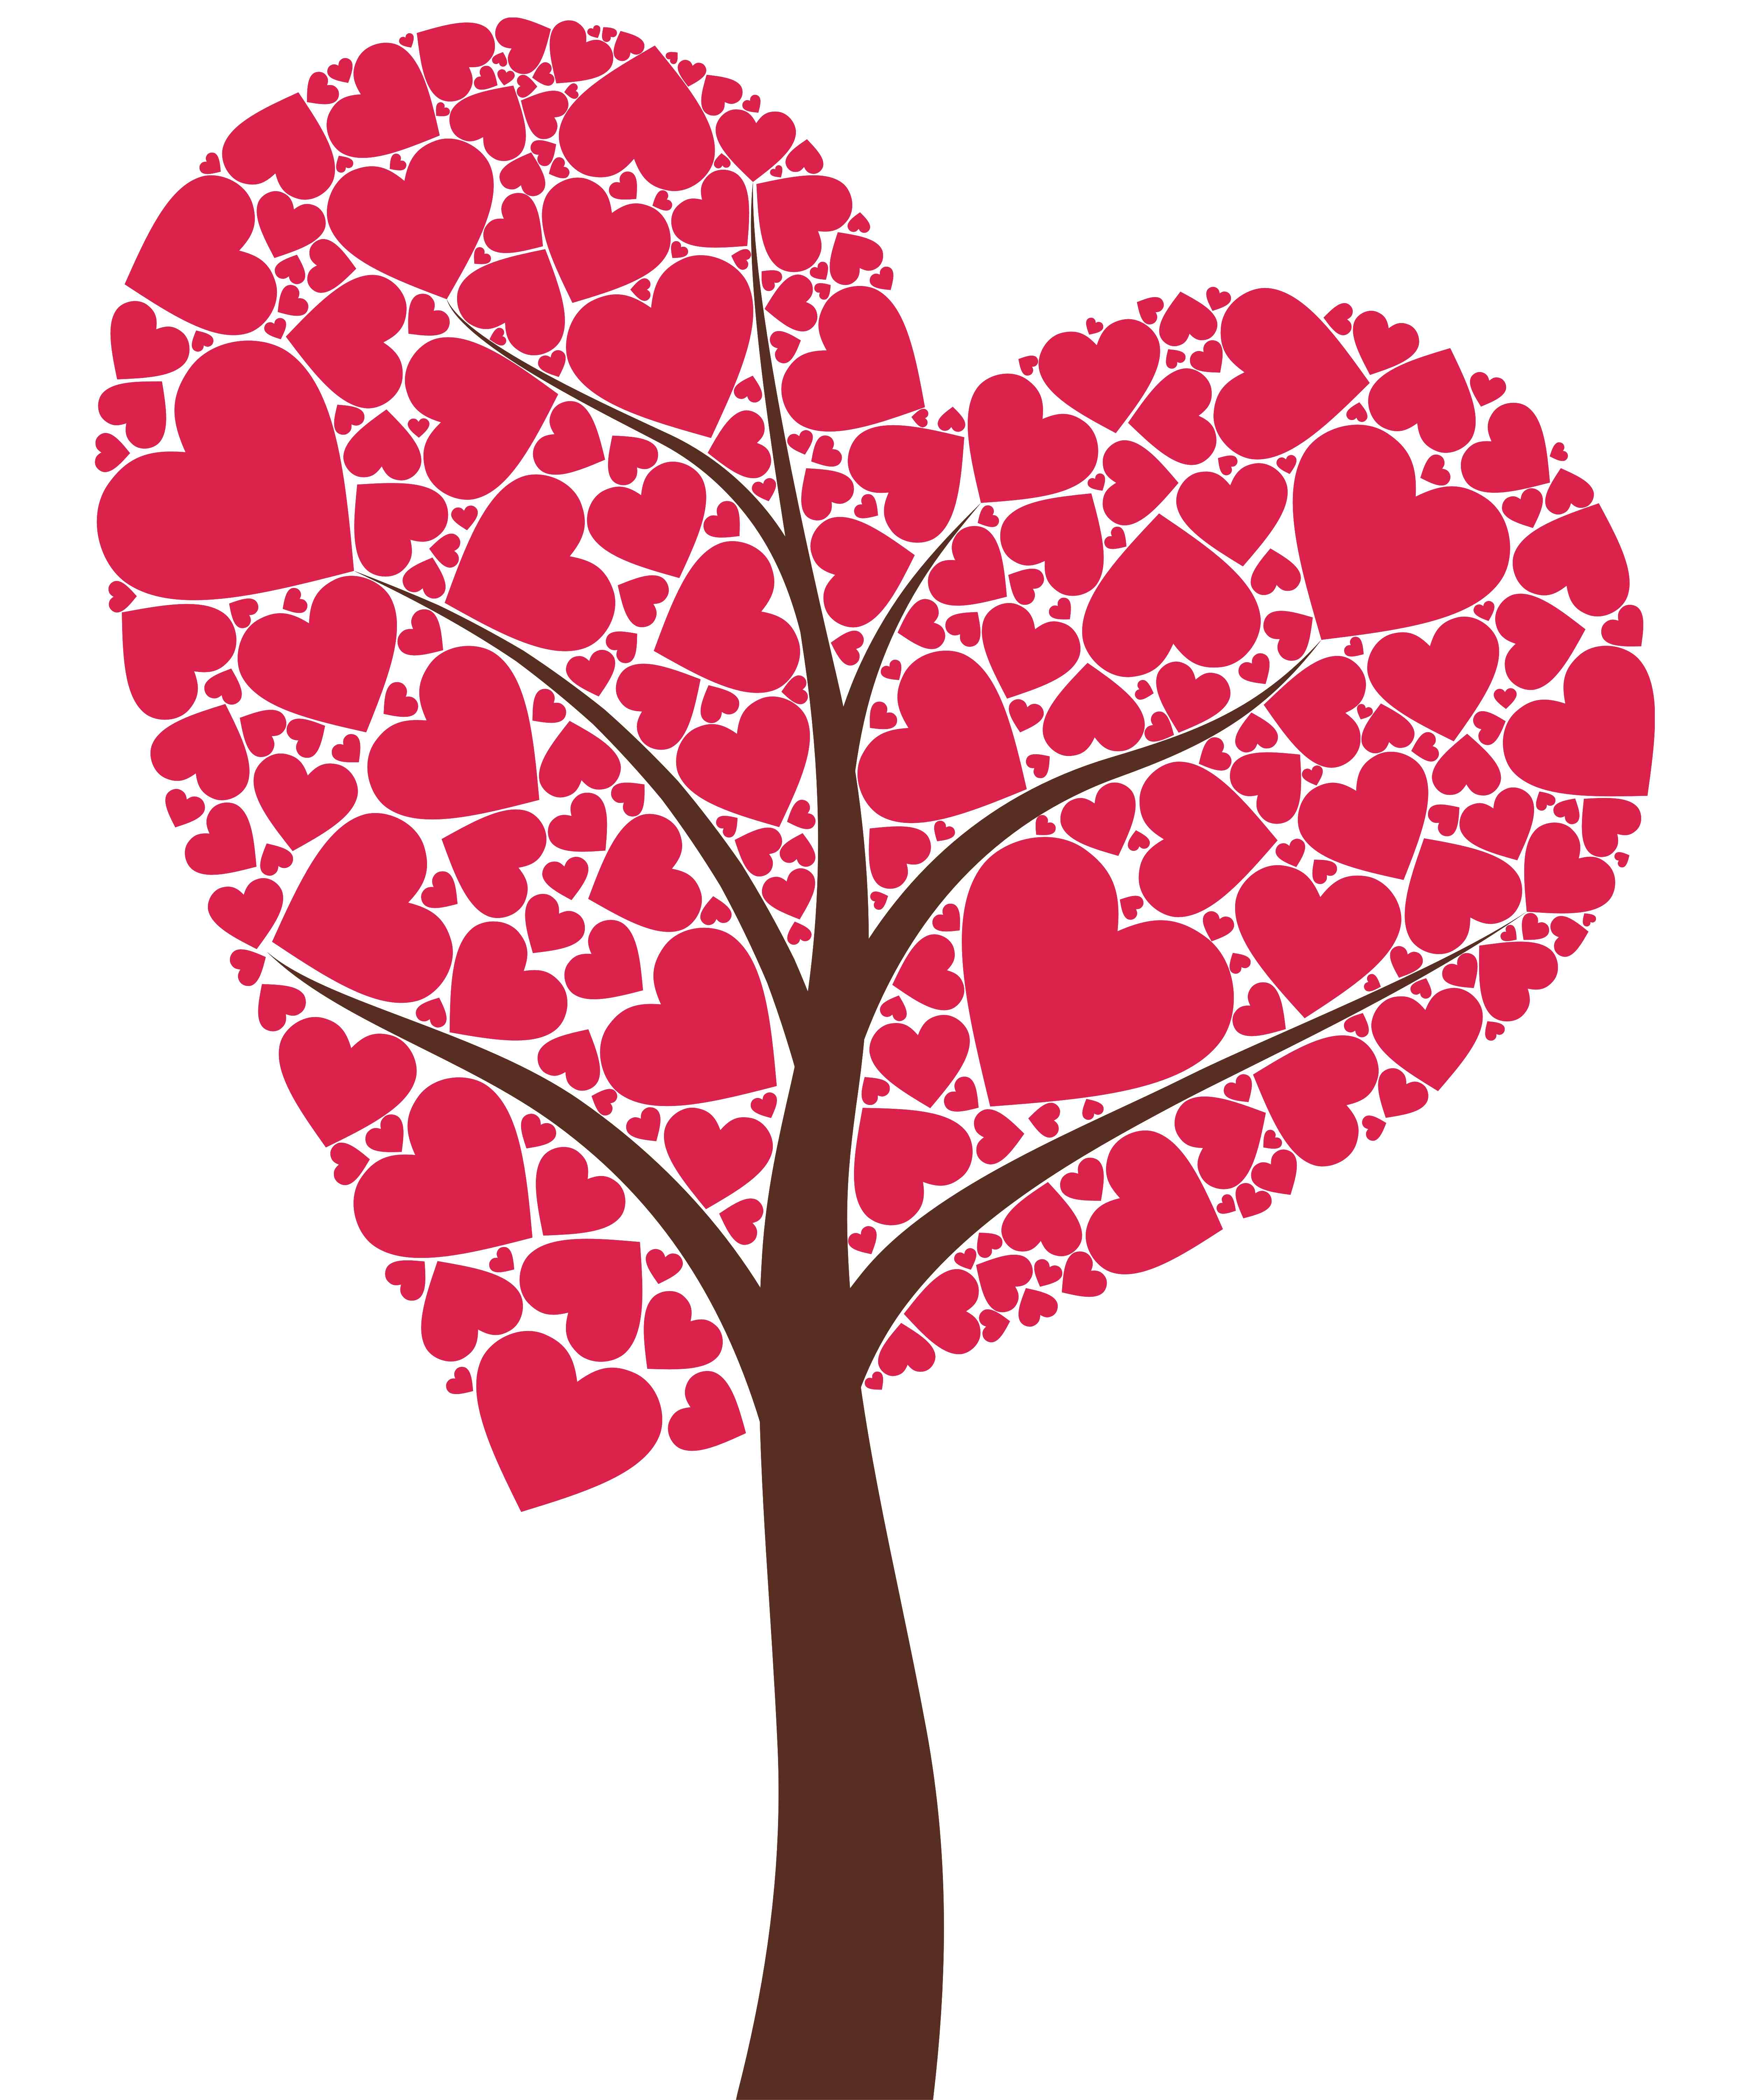 healthy hearts for valentine's day - denver naturopathic clinic, Ideas